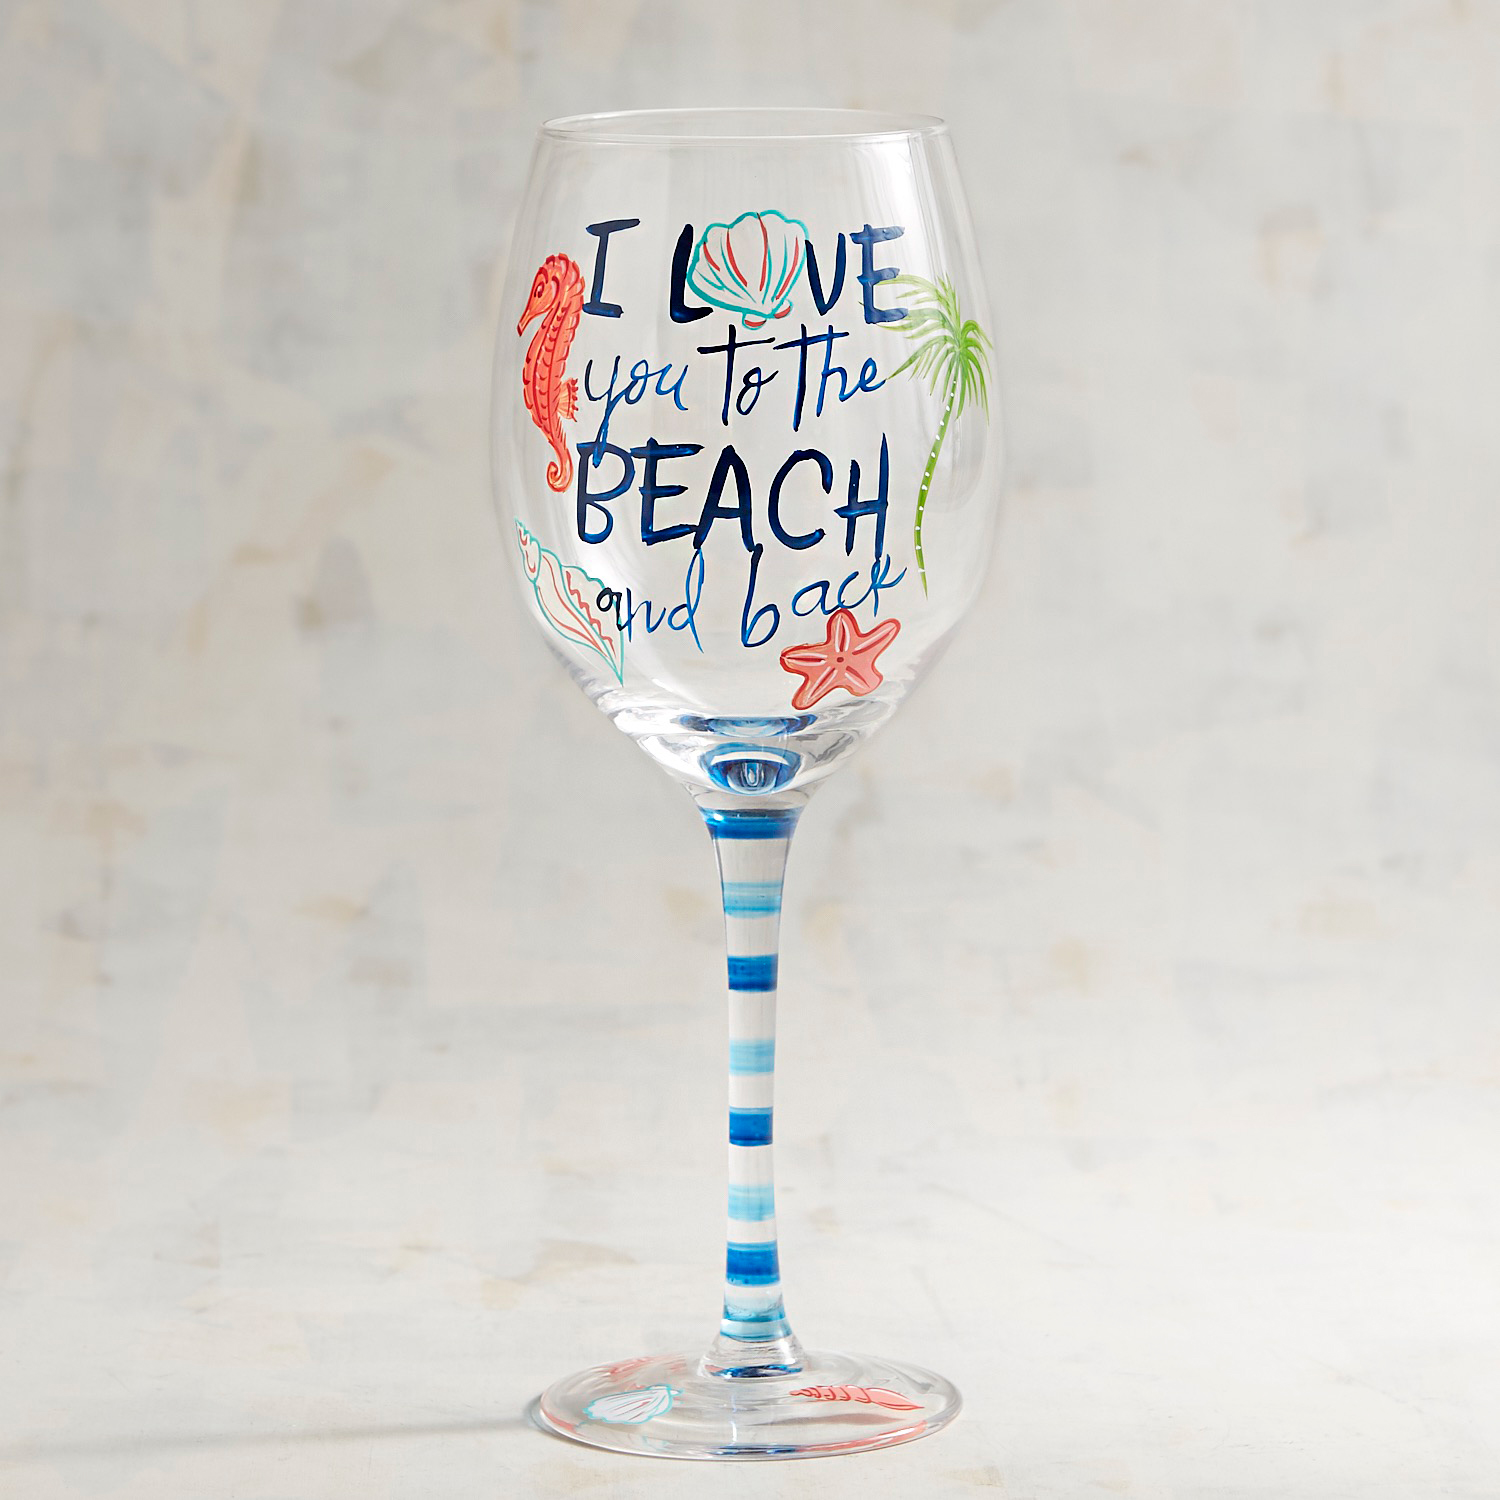 Love You to the Beach & Back Hand-Painted Wine Glass